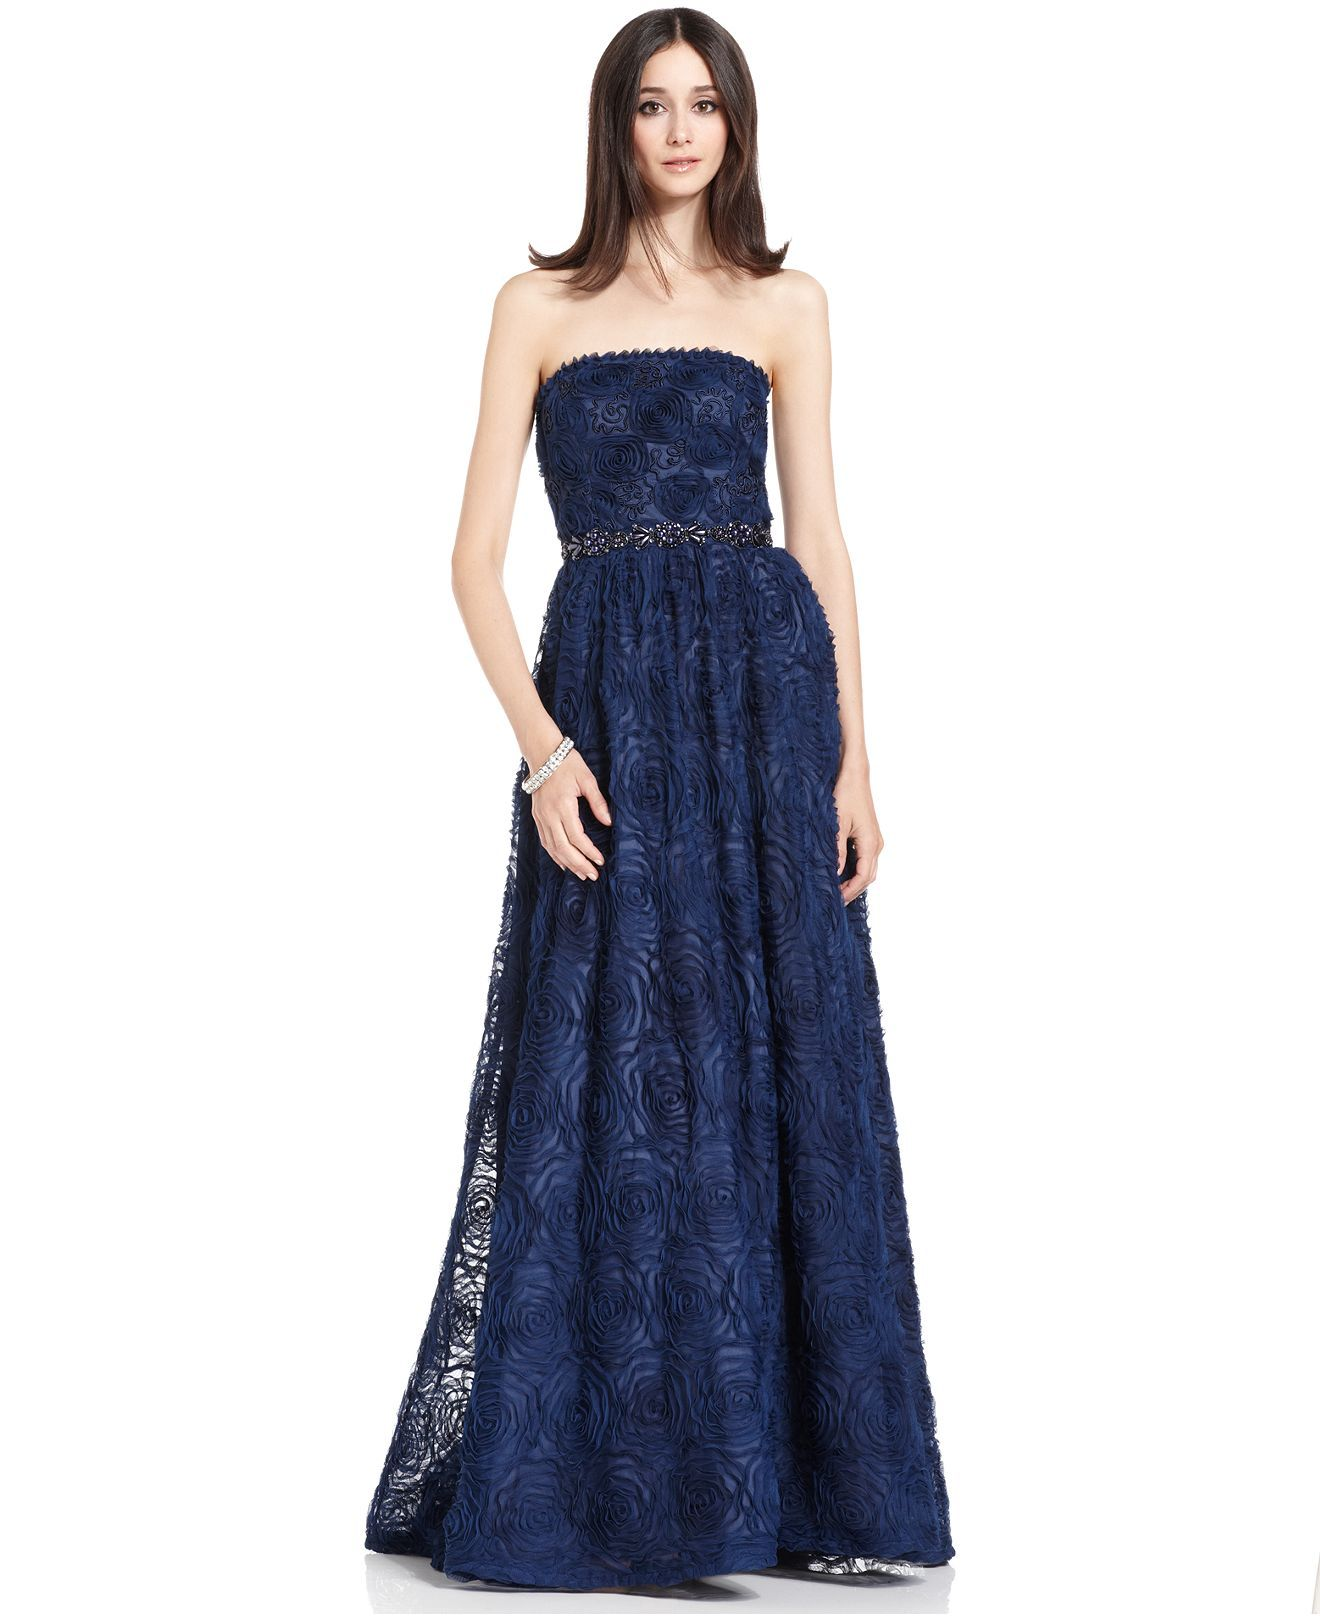 Adrianna Papell Dress Strapless Beaded Ball Gown